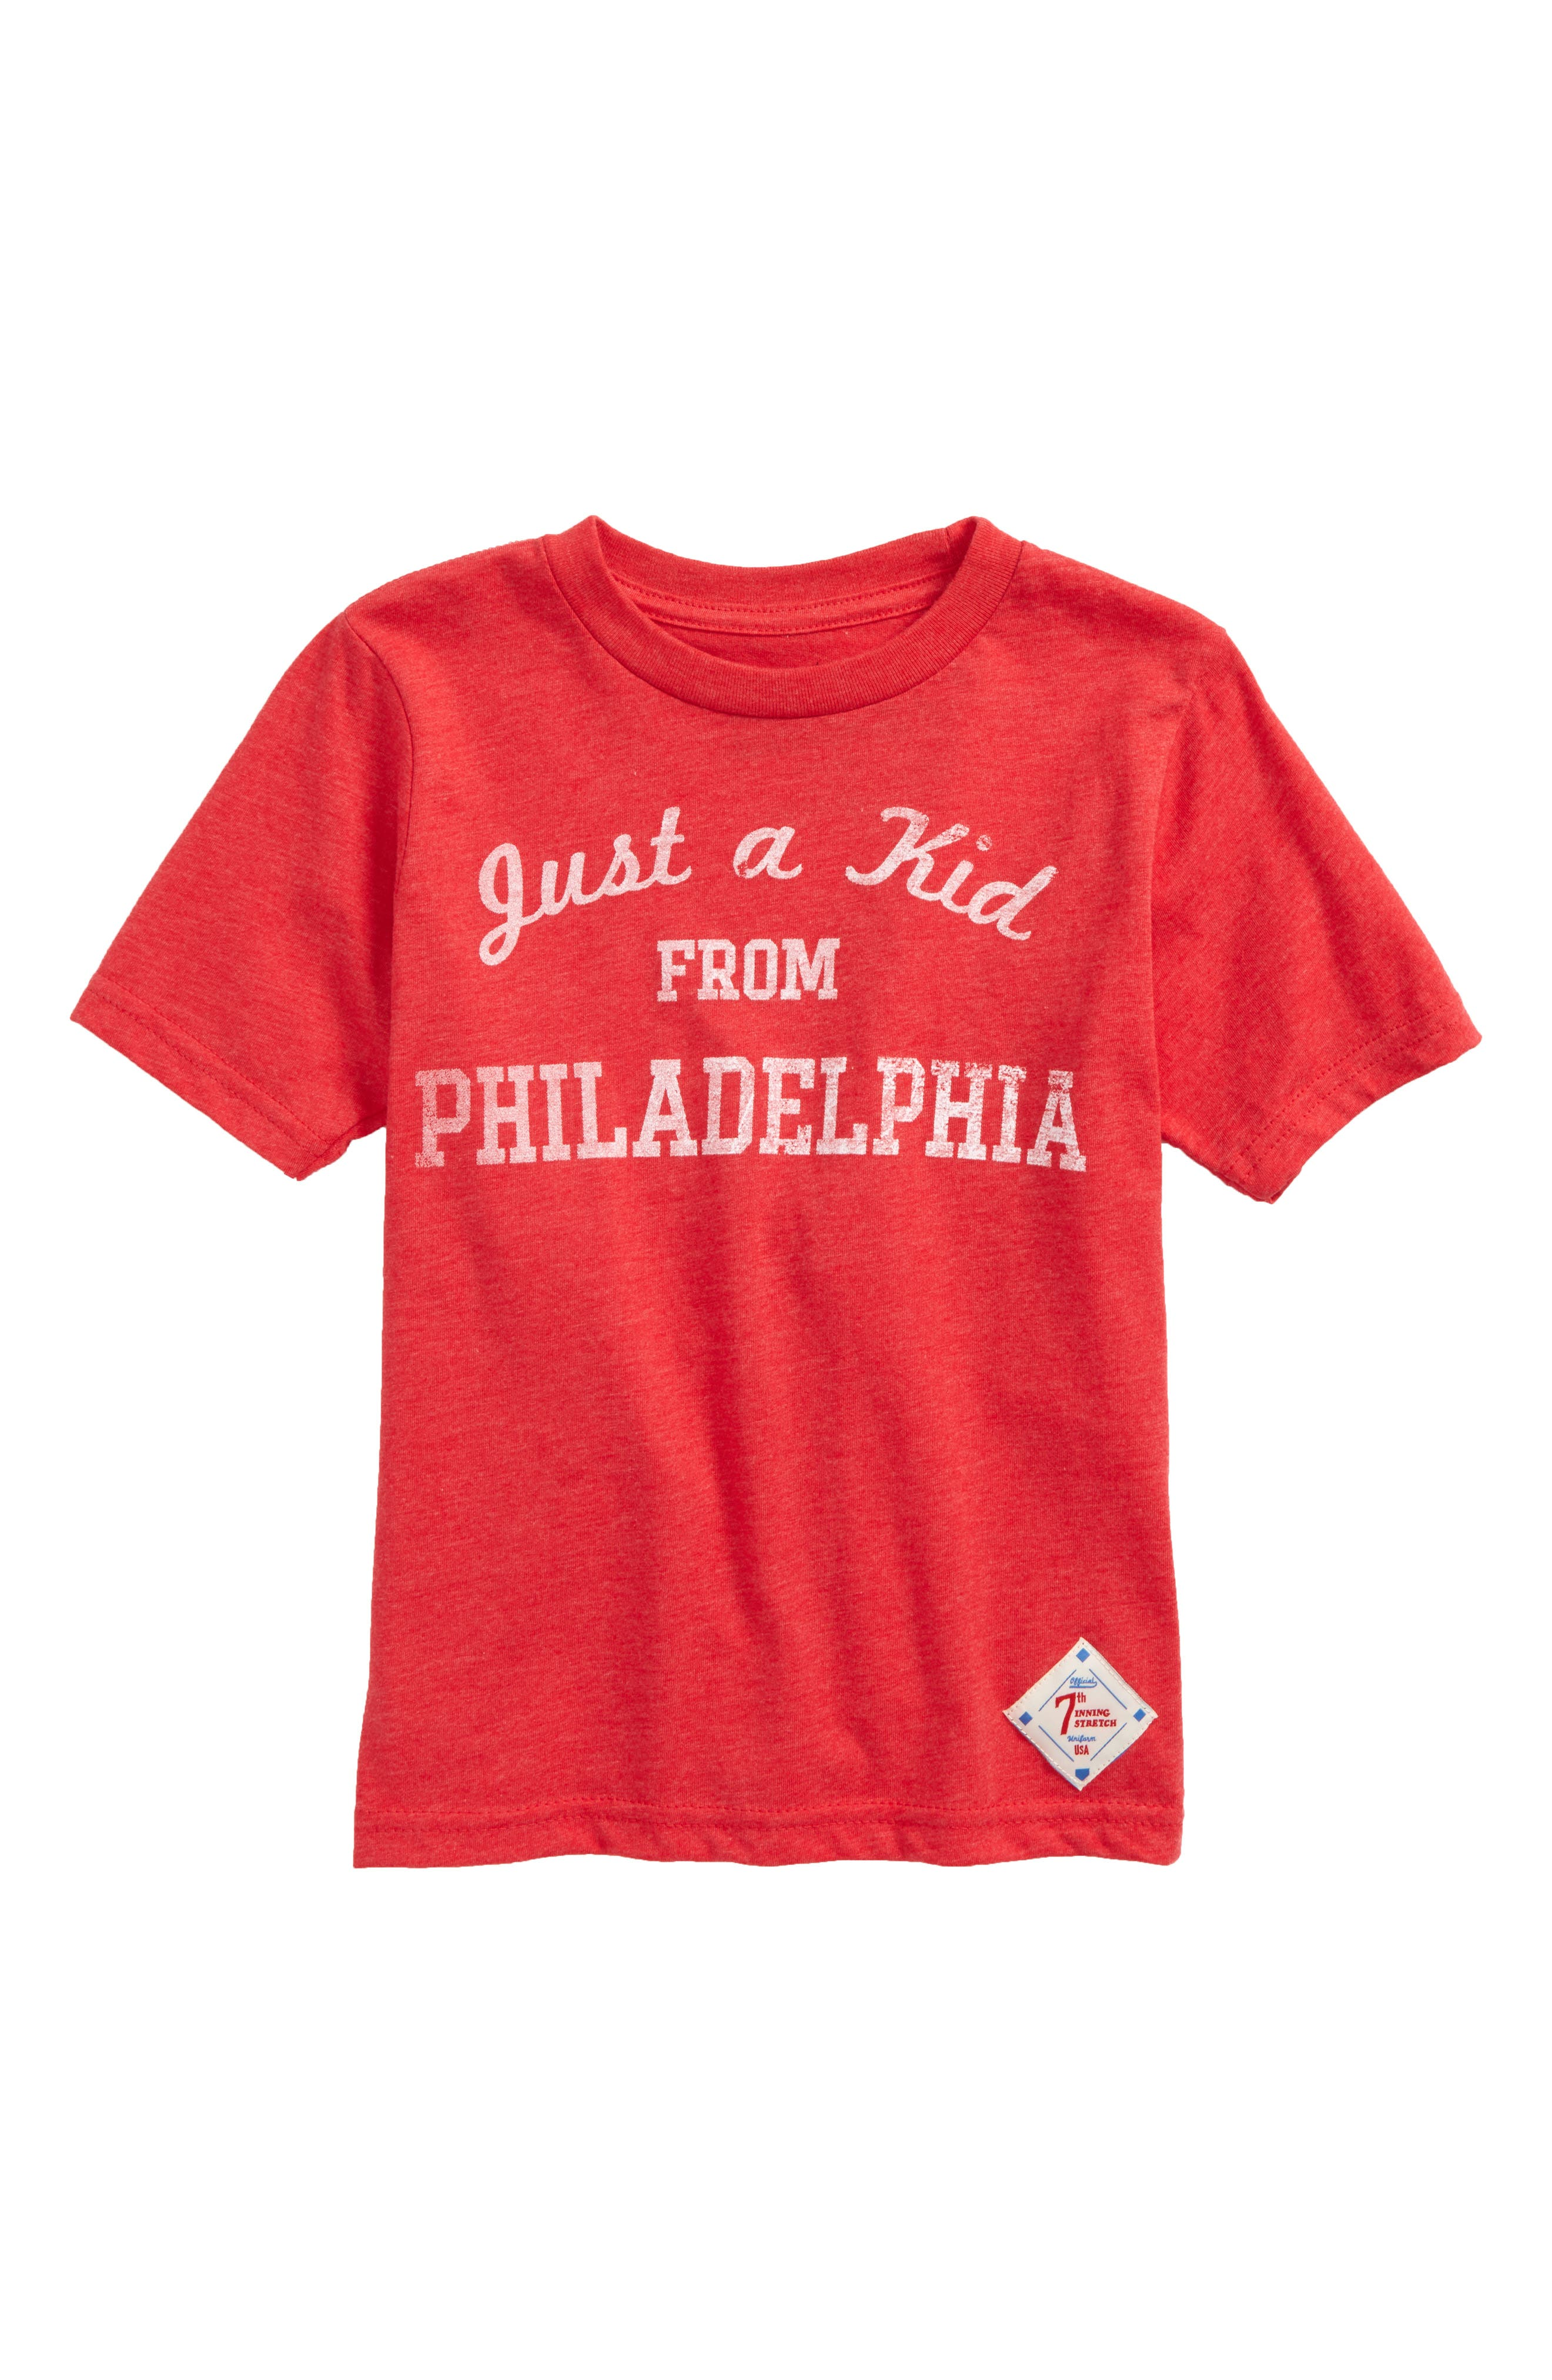 Just a Kid from Philadelphia Graphic T-Shirt,                         Main,                         color, Red/ White